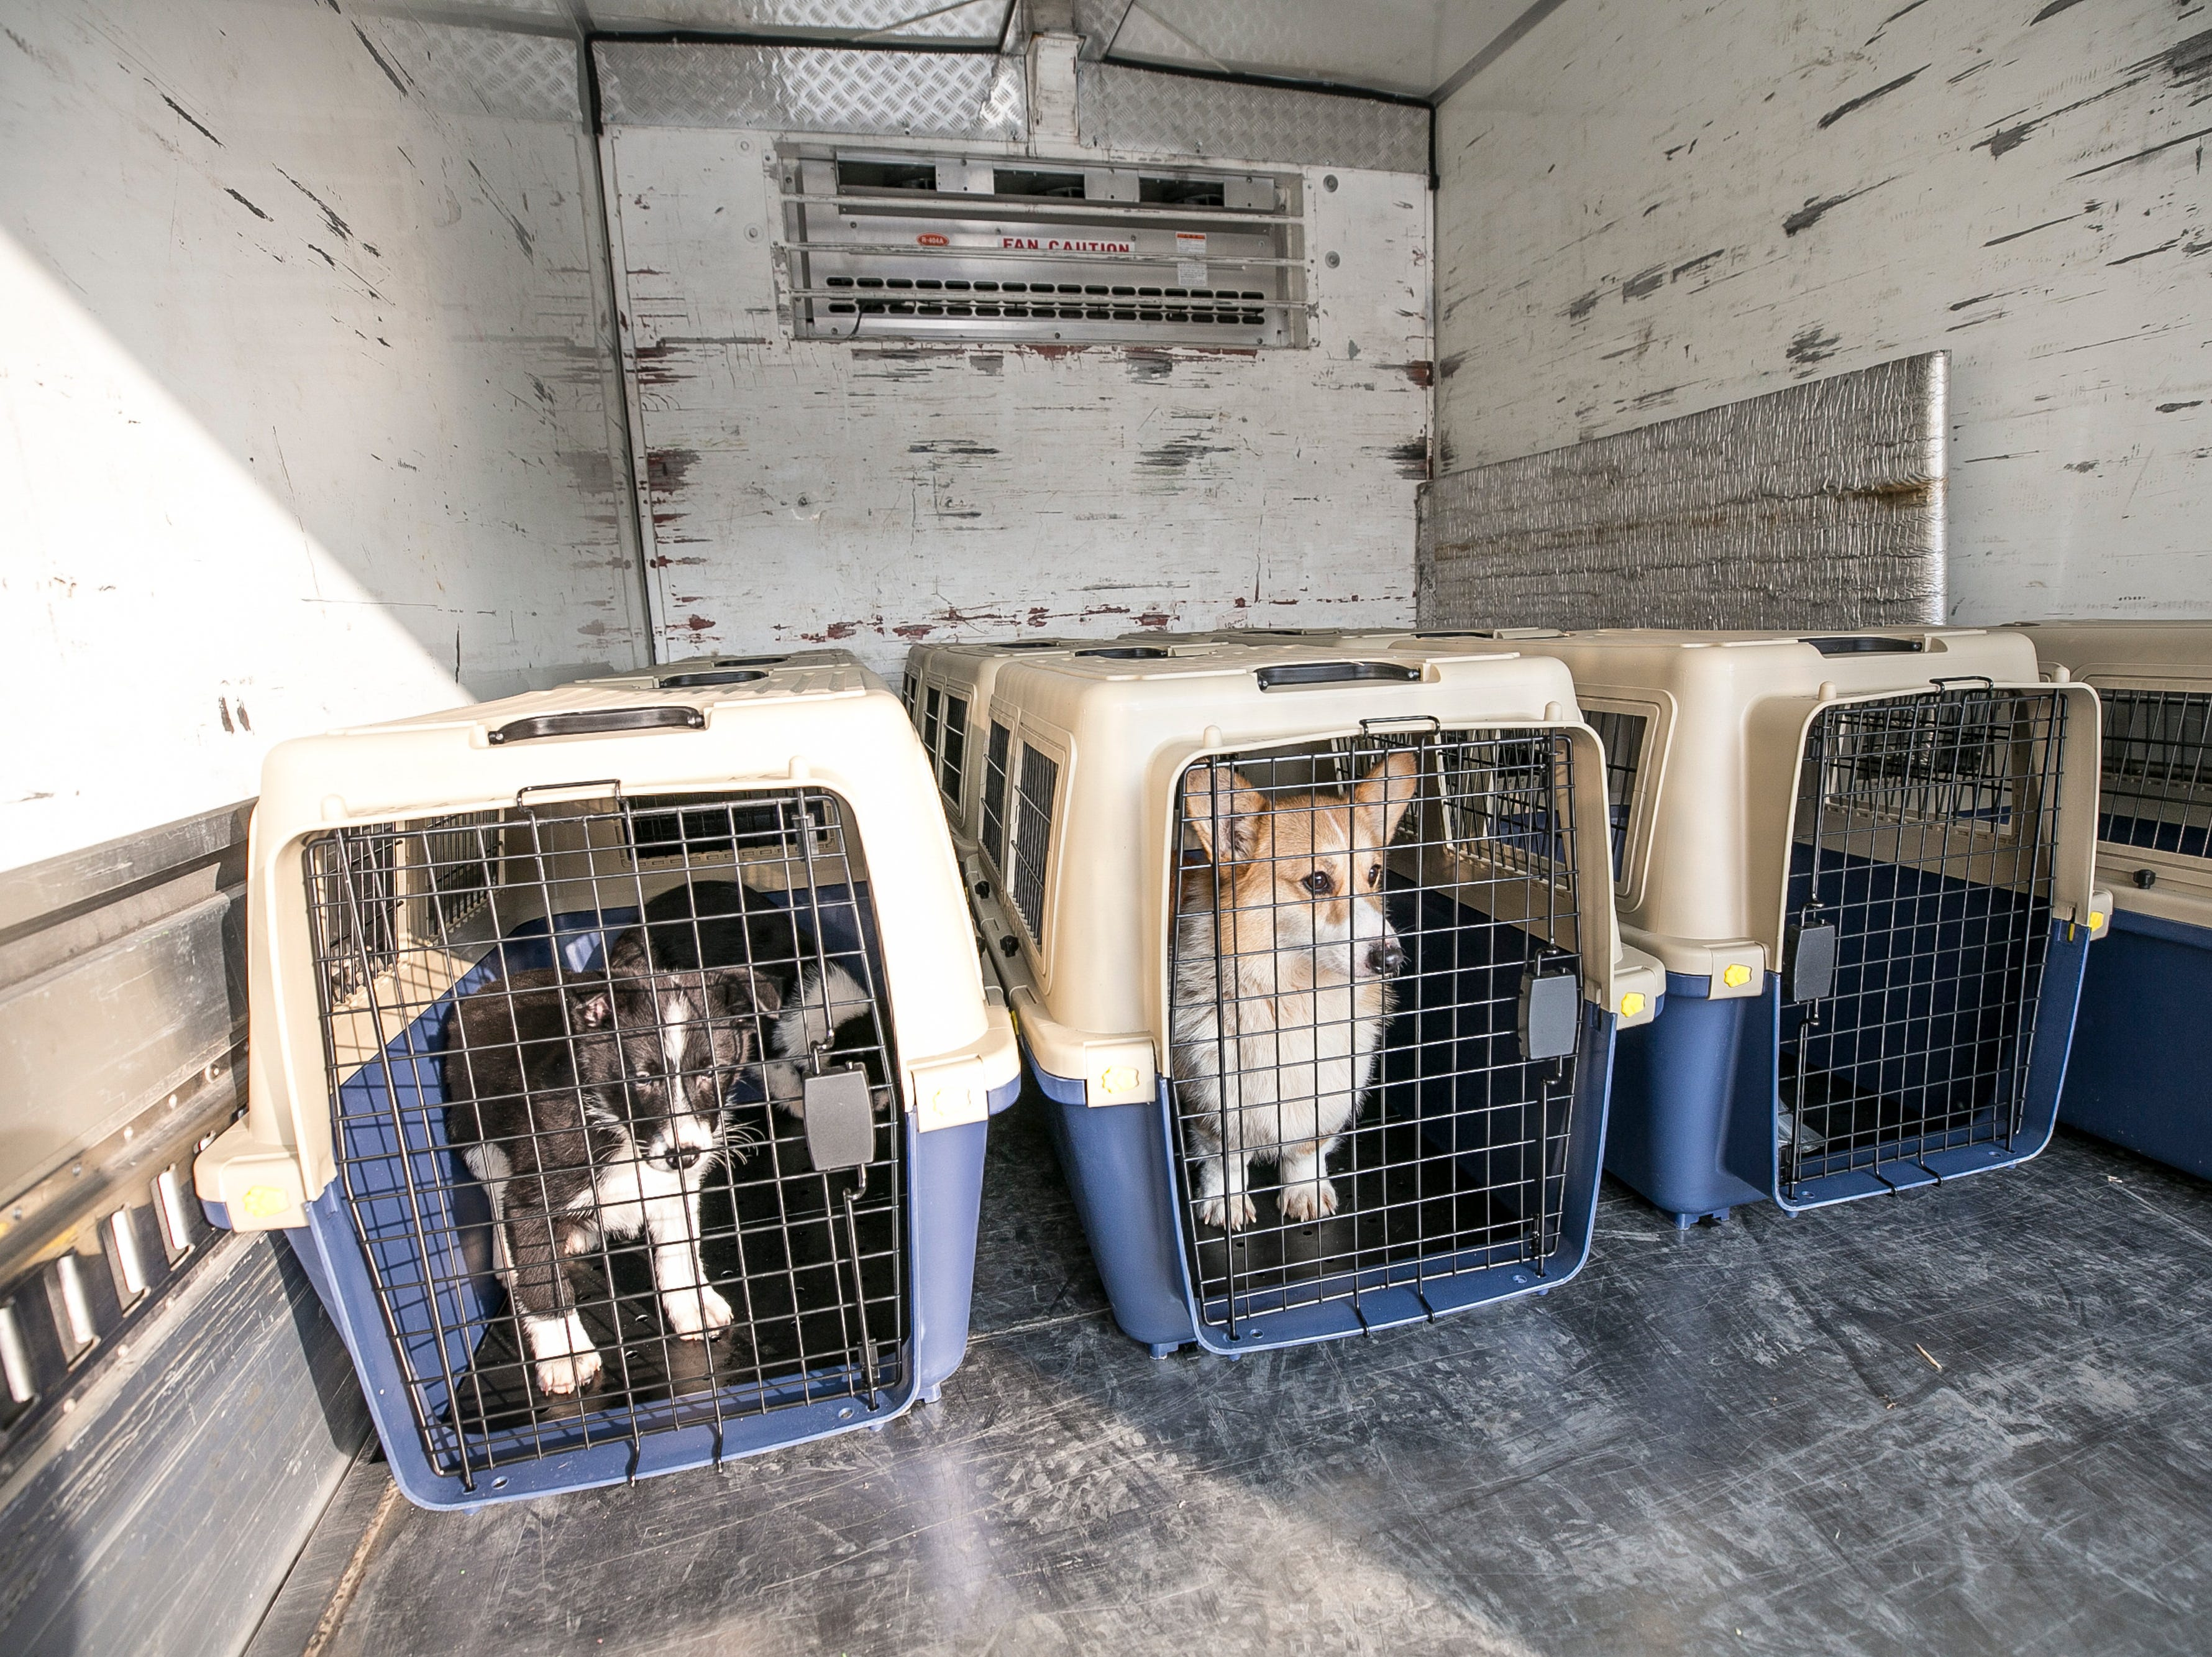 The rescued dogs sit inside the crates as the HSI Animal Rescue Team had loaded them onto the truck at a dog meat farm in Hongseong-gun, South Korea, on Wednesday, February 13, 2019. The operation is part of HSIs efforts to fight the dog meat trade throughout Asia. In South Korea, the campaign includes working to raise awareness among Koreans about the plight of meat dogs being no different from the animals more and more of them are keeping as pets.